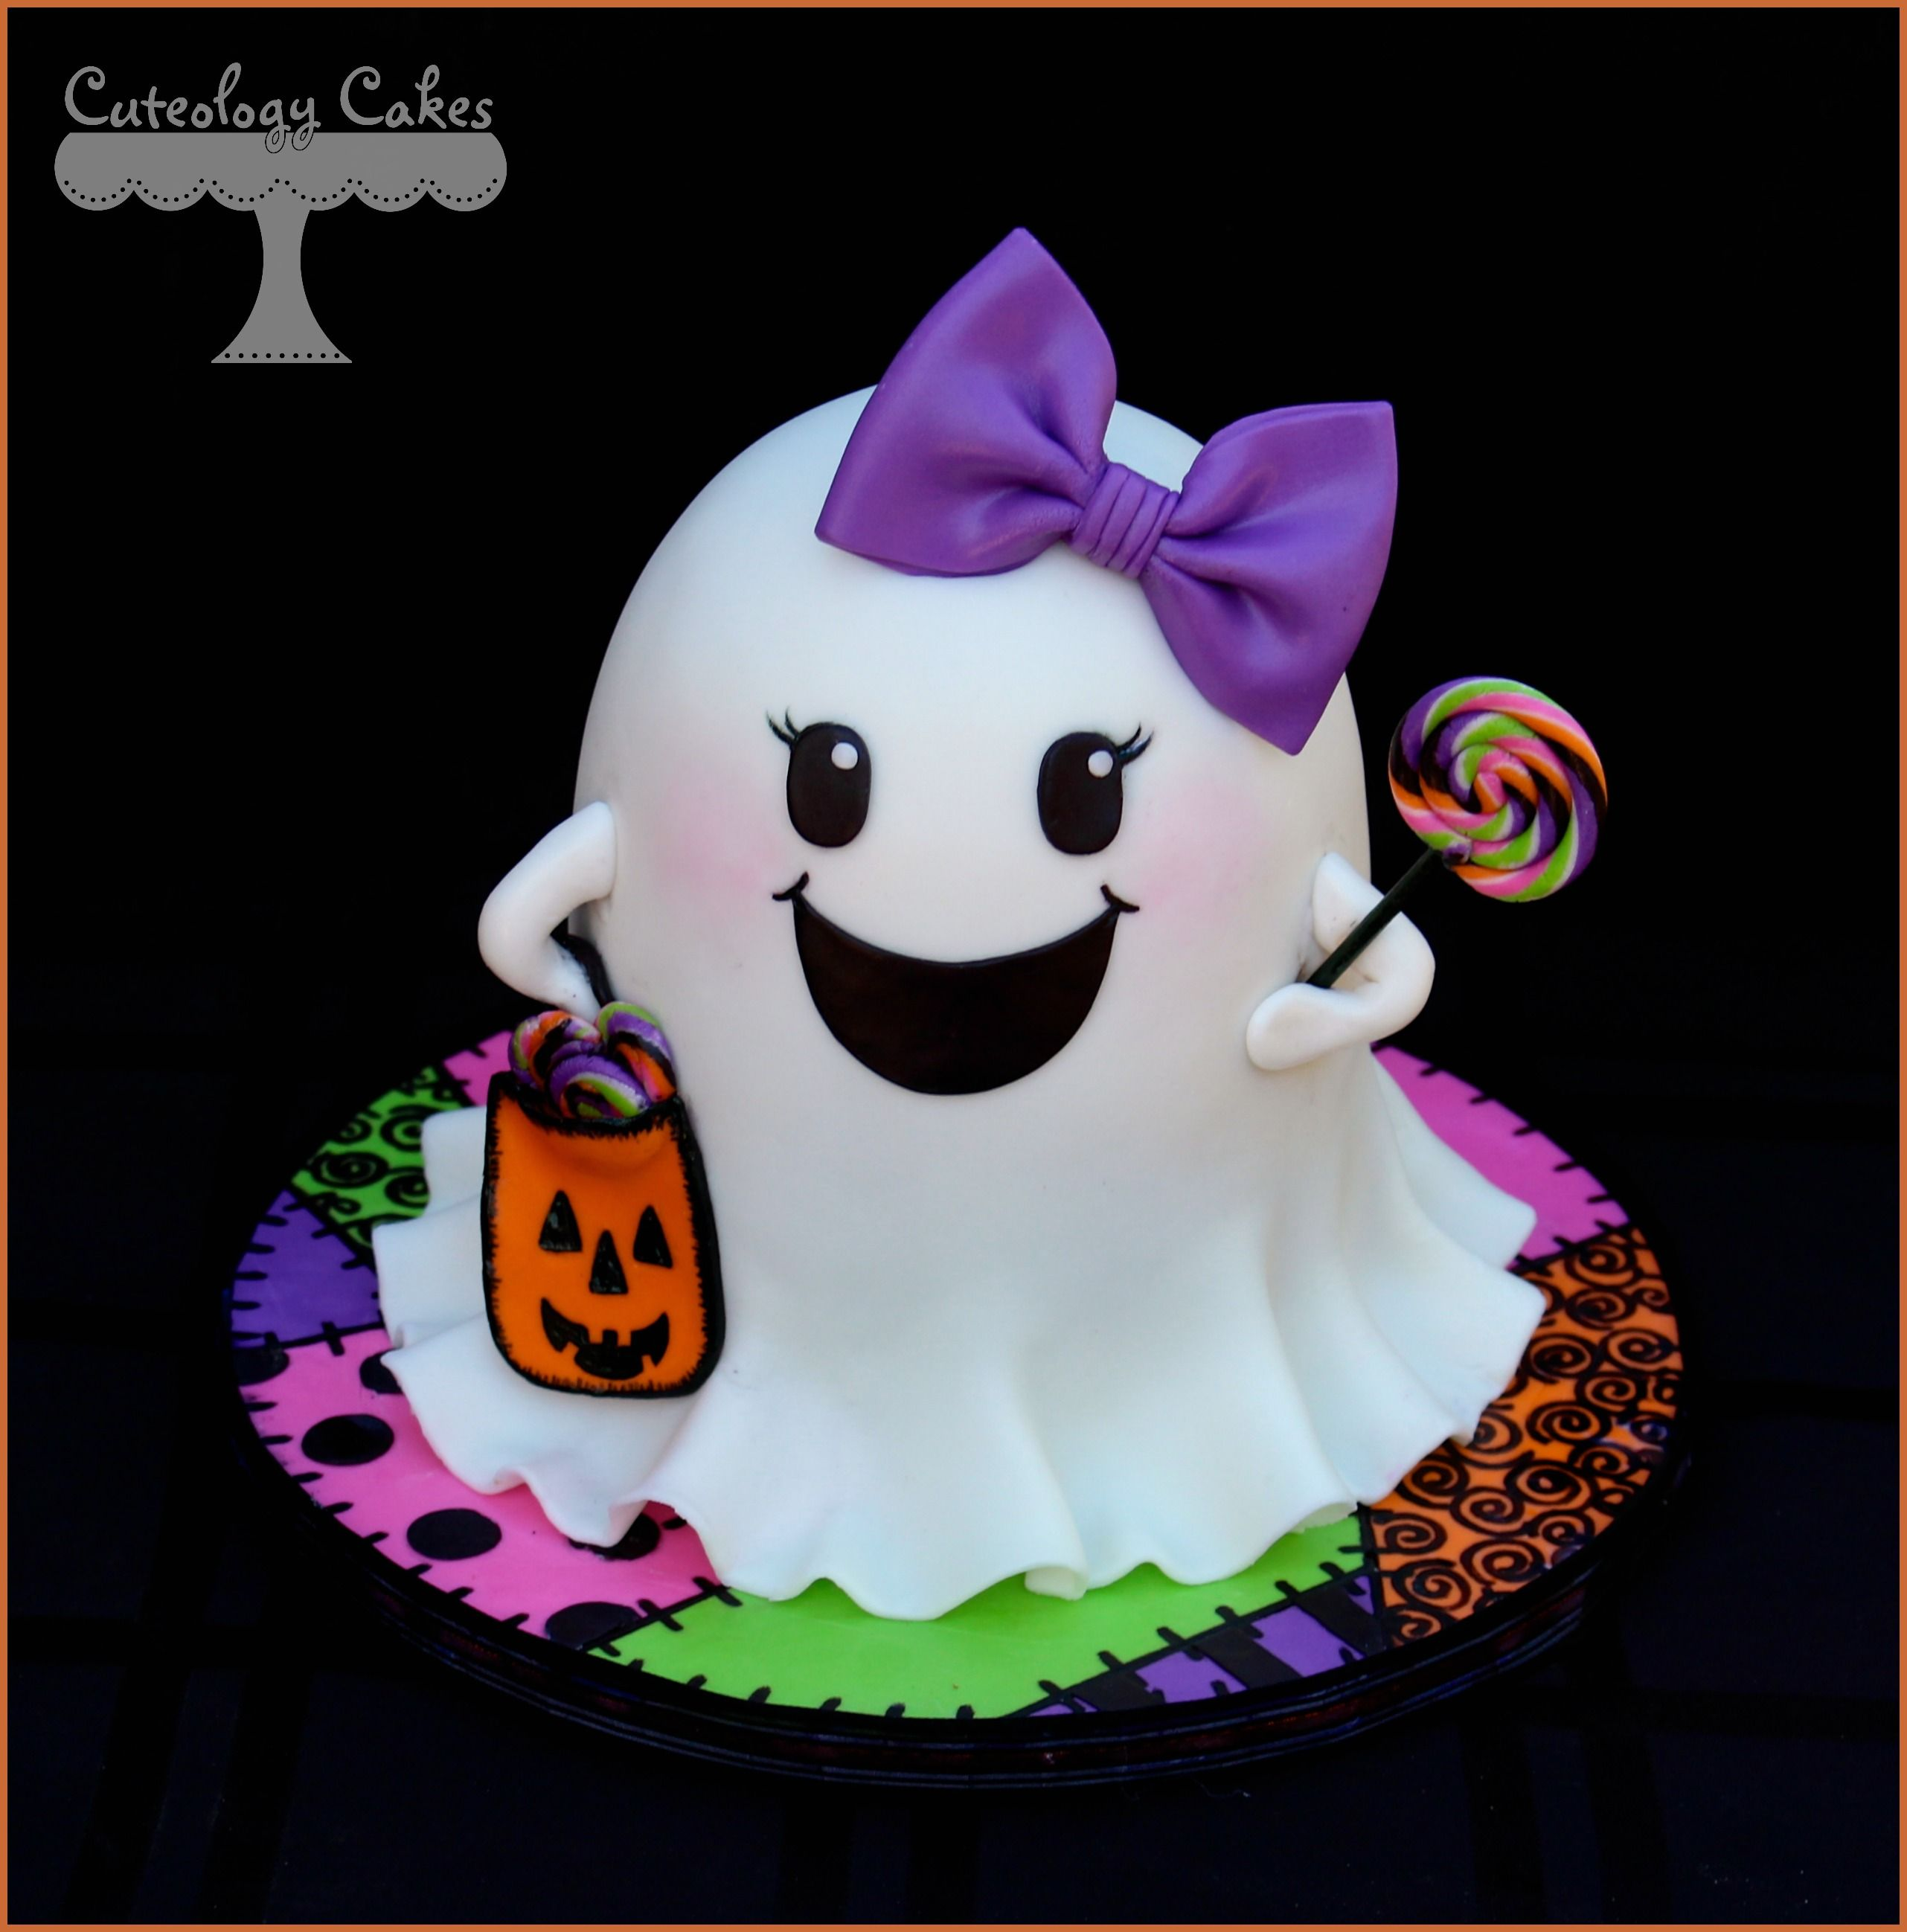 Girly Ghost cake for Halloween wwwfacebook/ilovecuteology - Halloween Cake Decorating Ideas